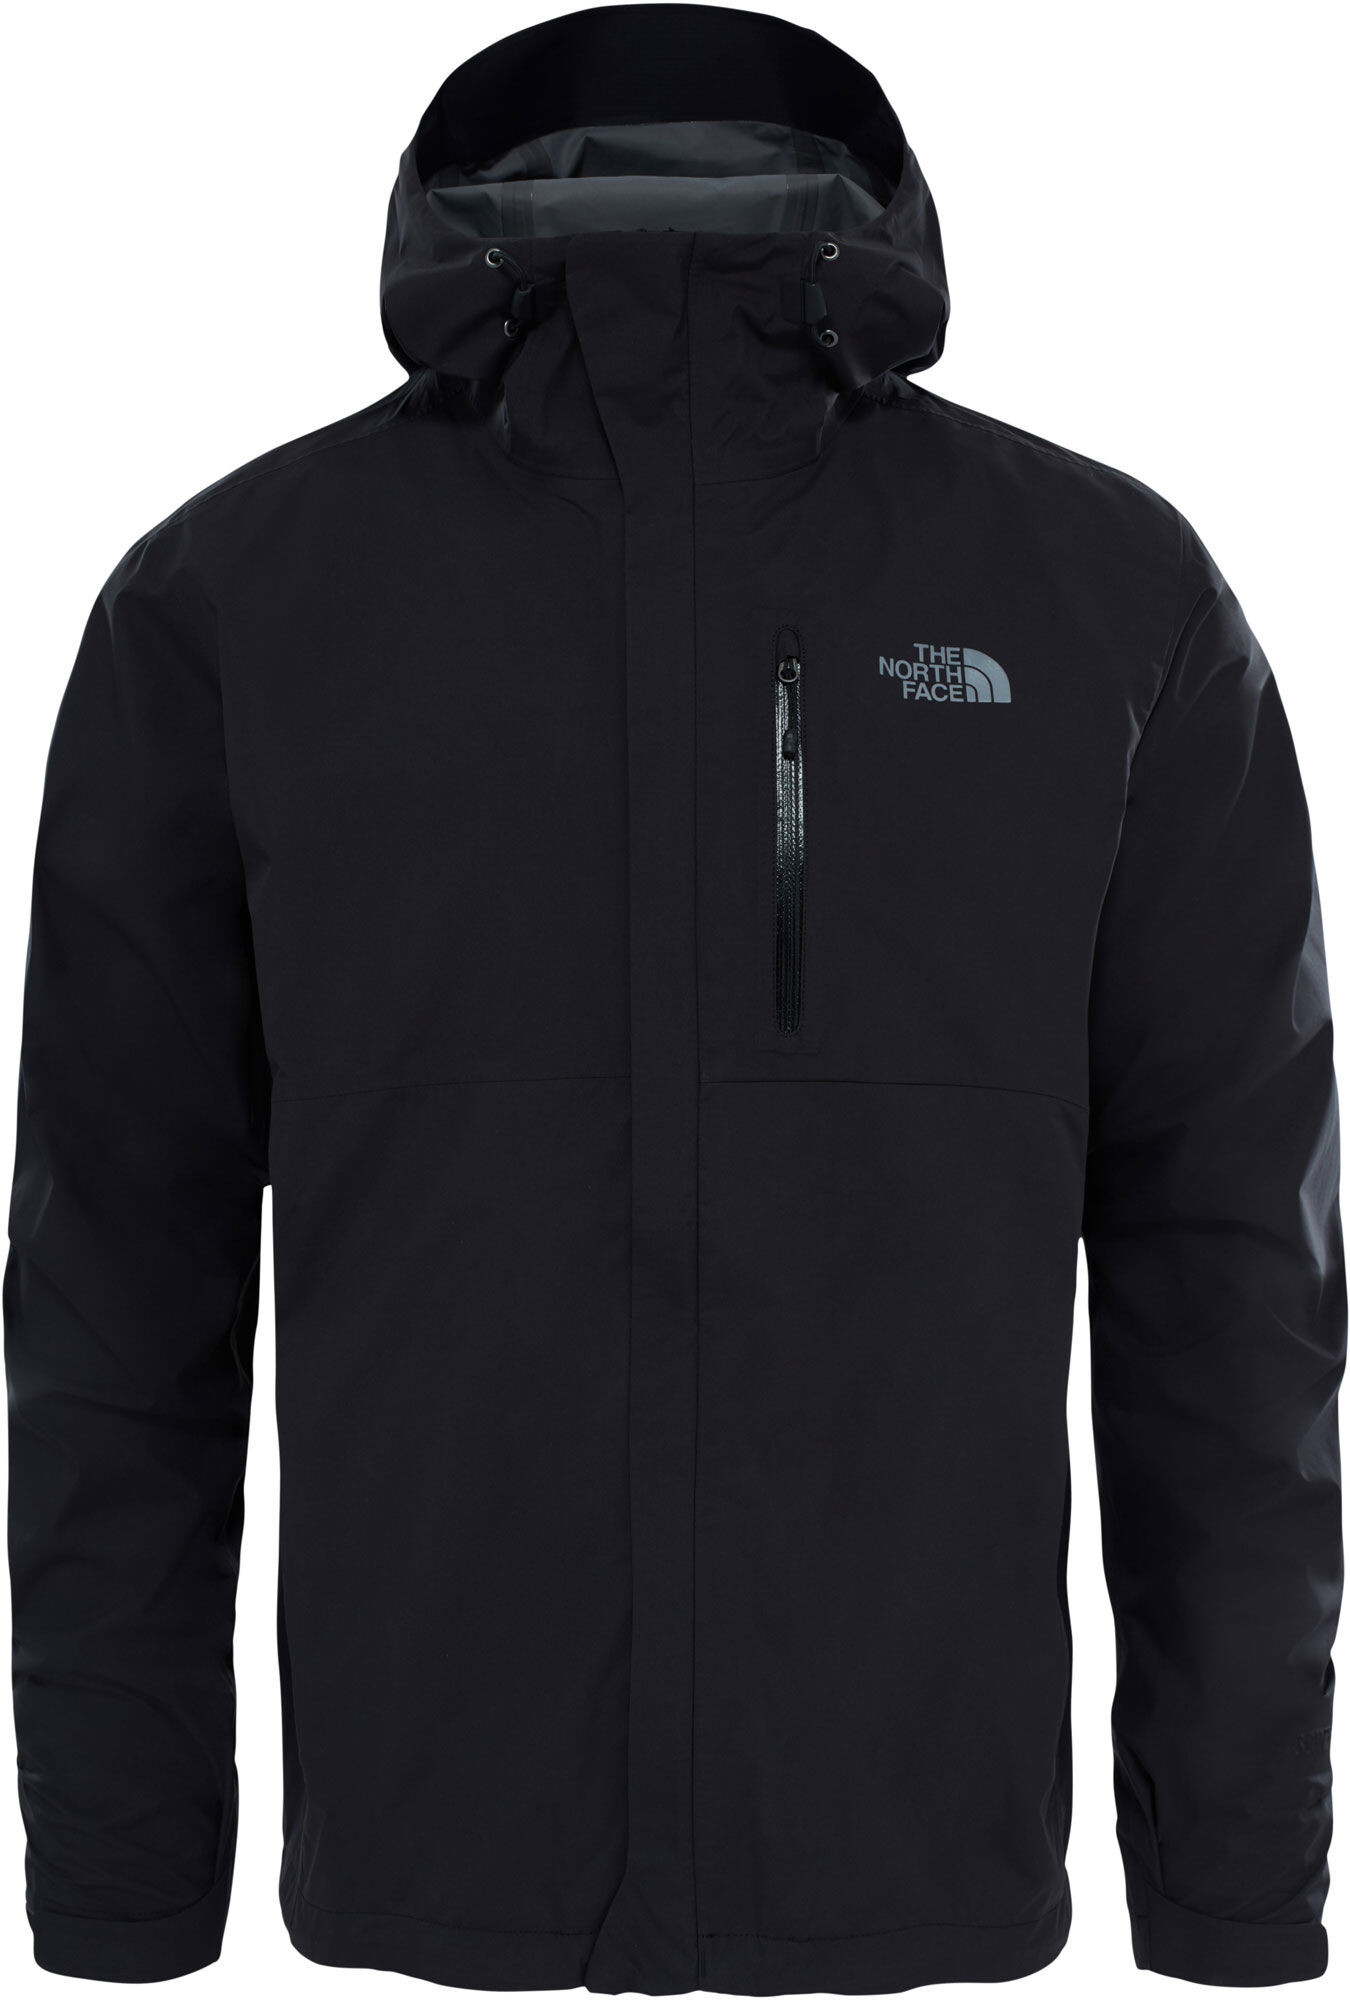 The North Face Dryzzle - Veste Homme - noir sur CAMPZ ! 3a7d60fab2c3